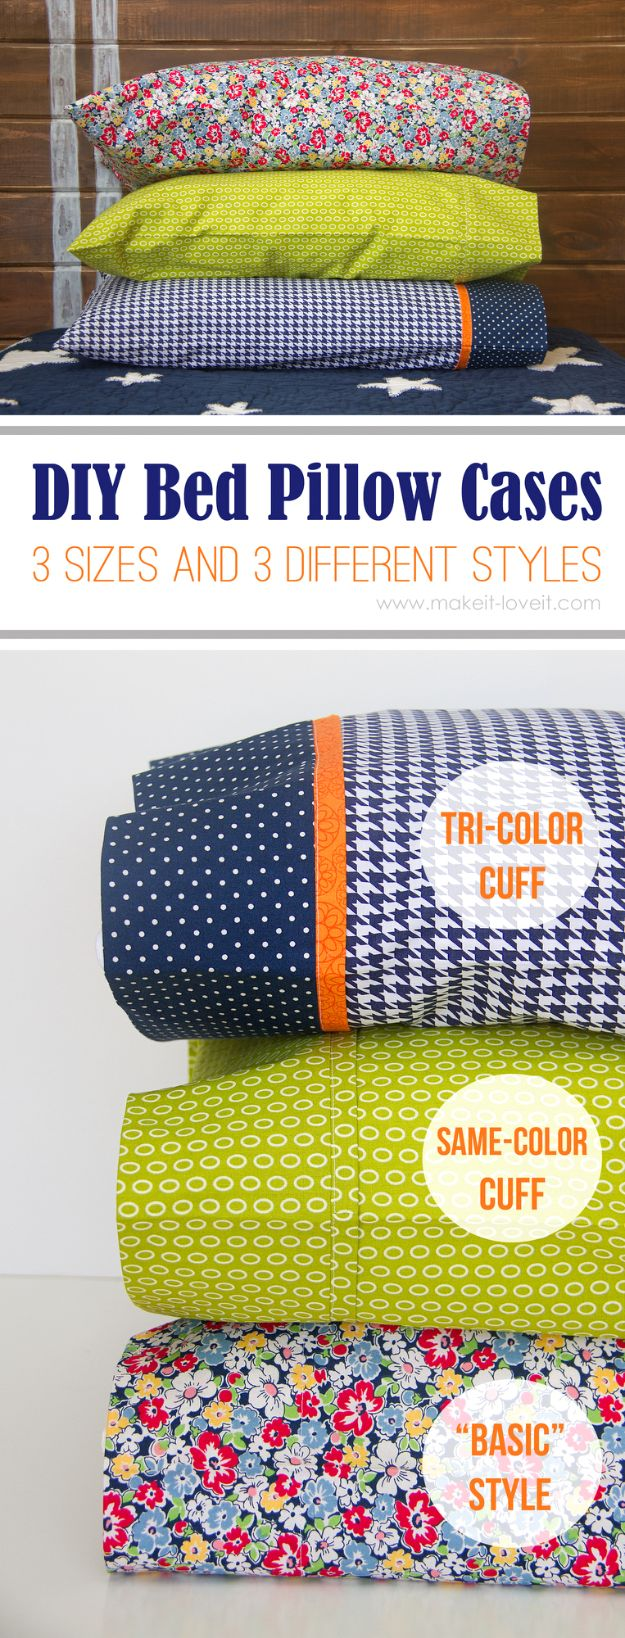 DIY Sewing Projects for the Home - DIY Bed Pillow Cases - Easy DIY Christmas Gifts and Ideas for Making Kitchen, Bedroom and Bathroom Decor - Free Step by Step Tutorial to Sew